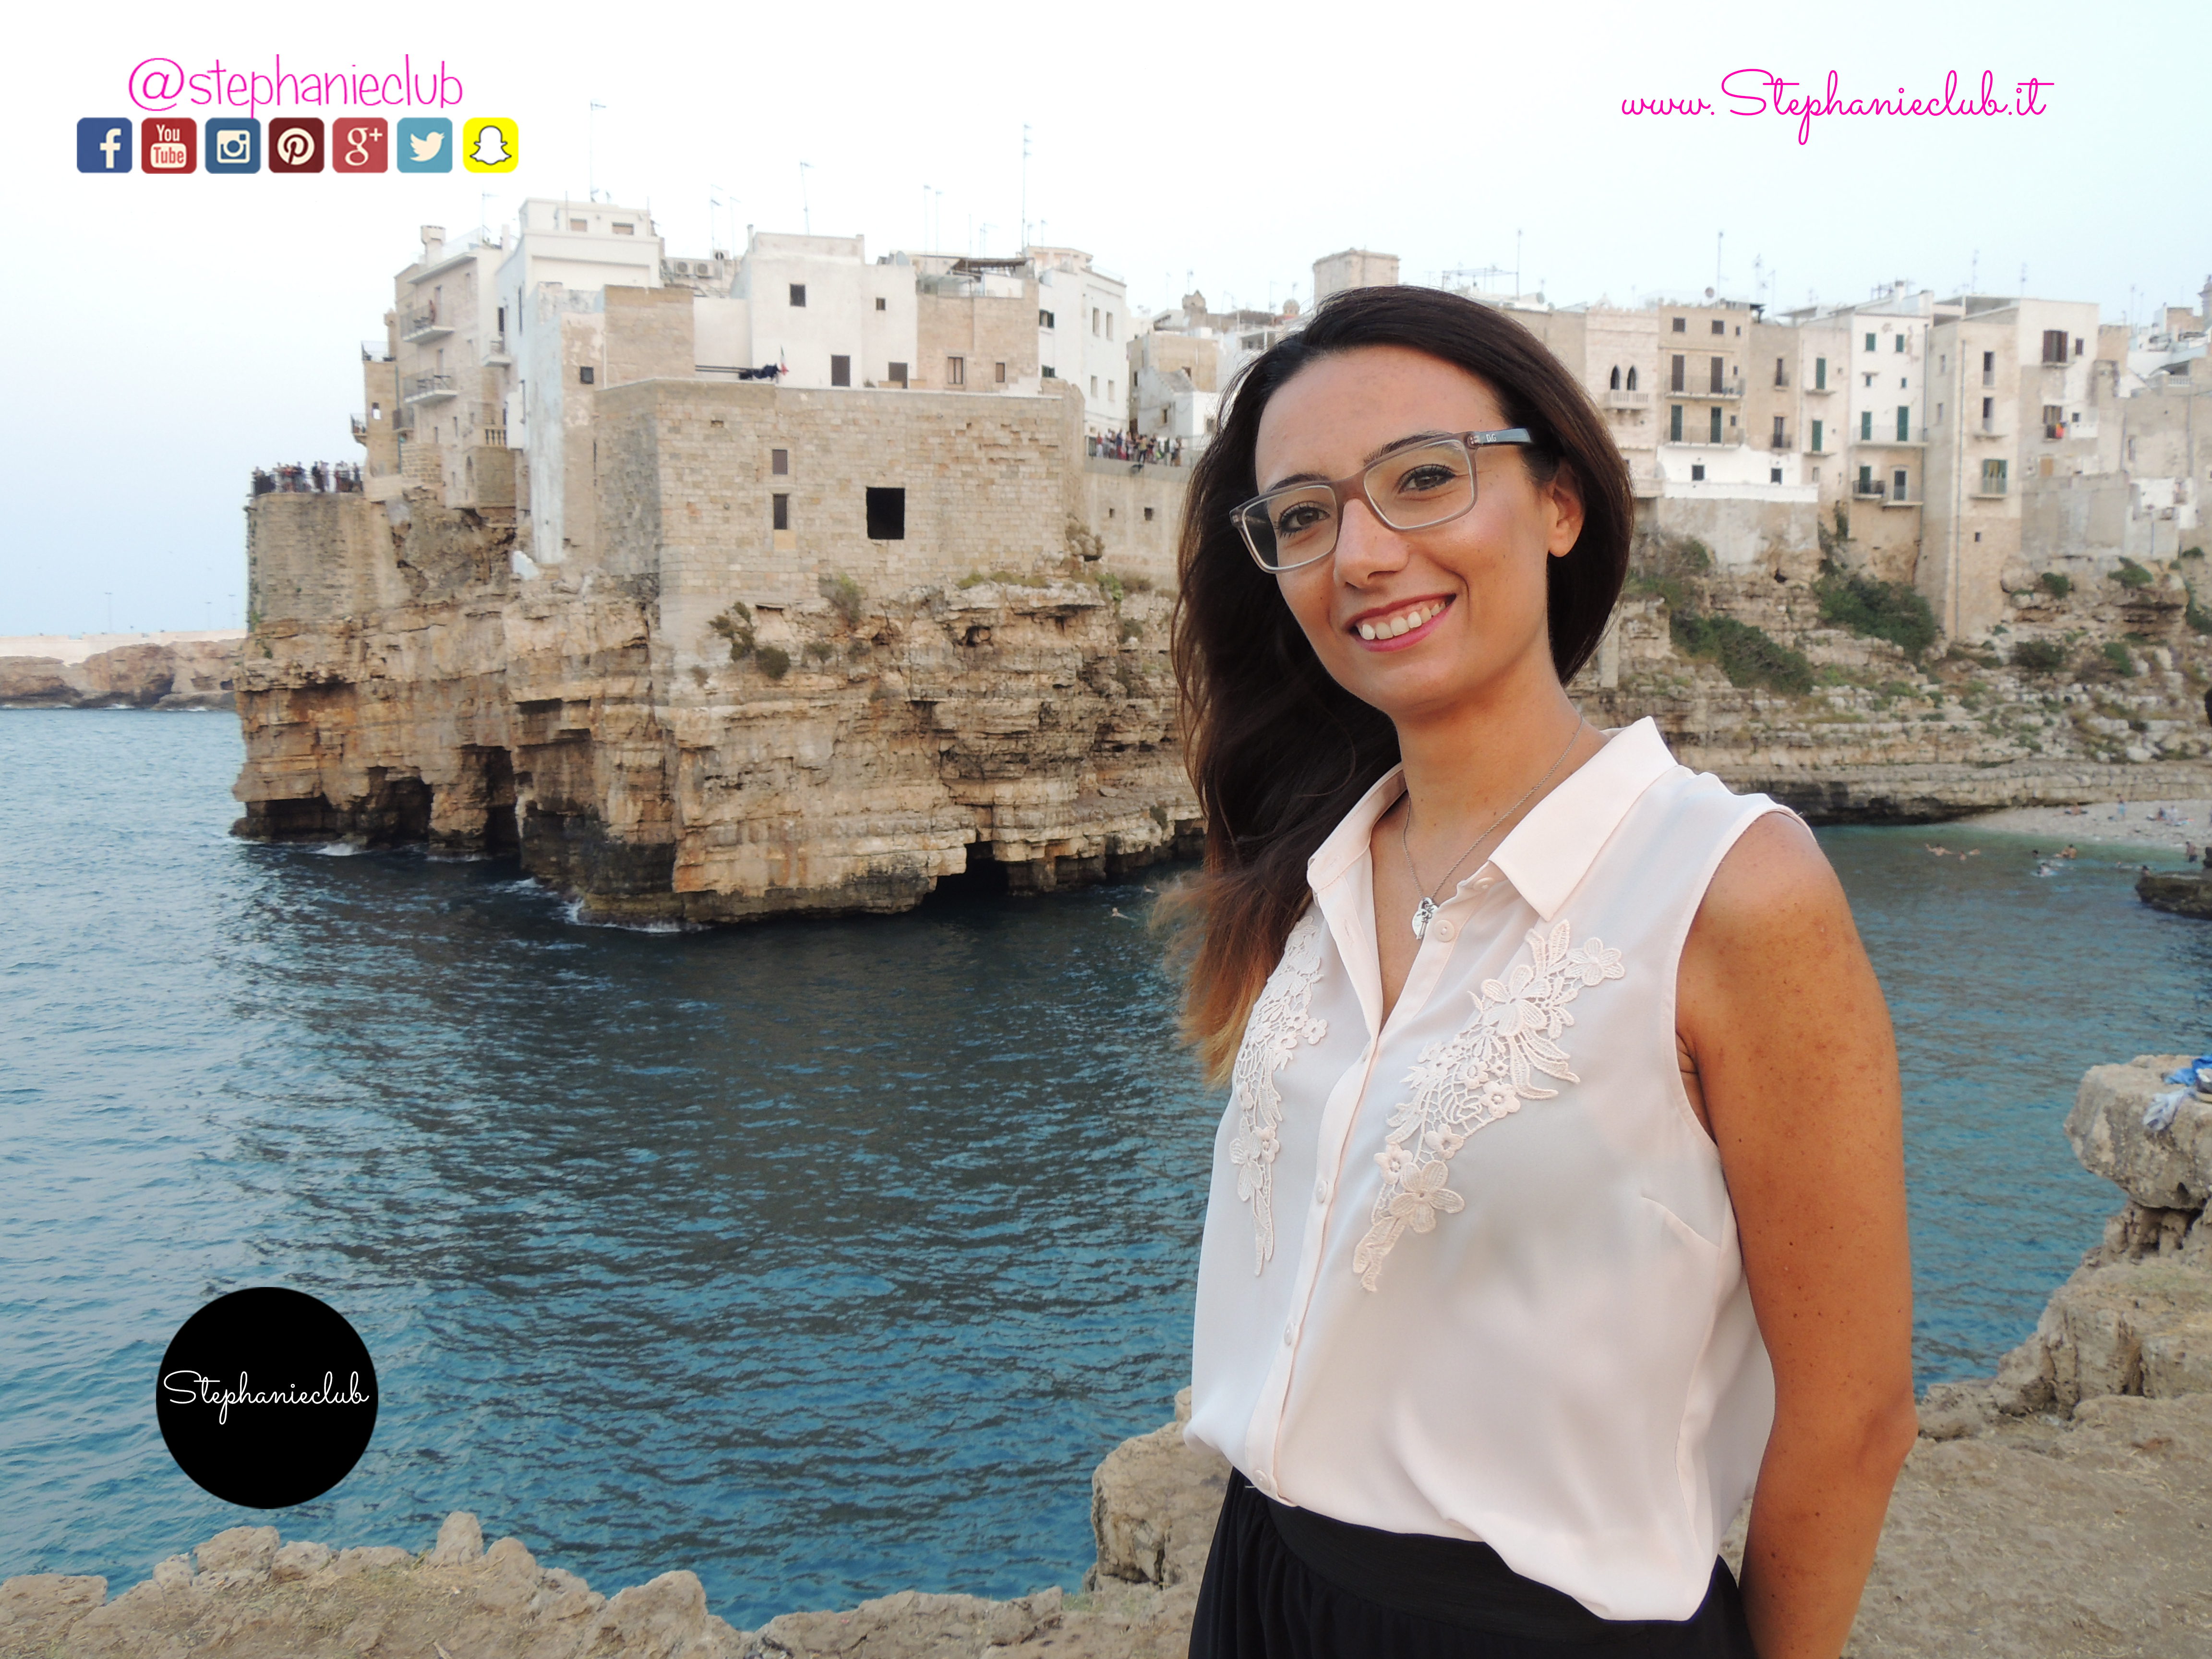 Backstage - Photo Shooting a Polignano a mare_05